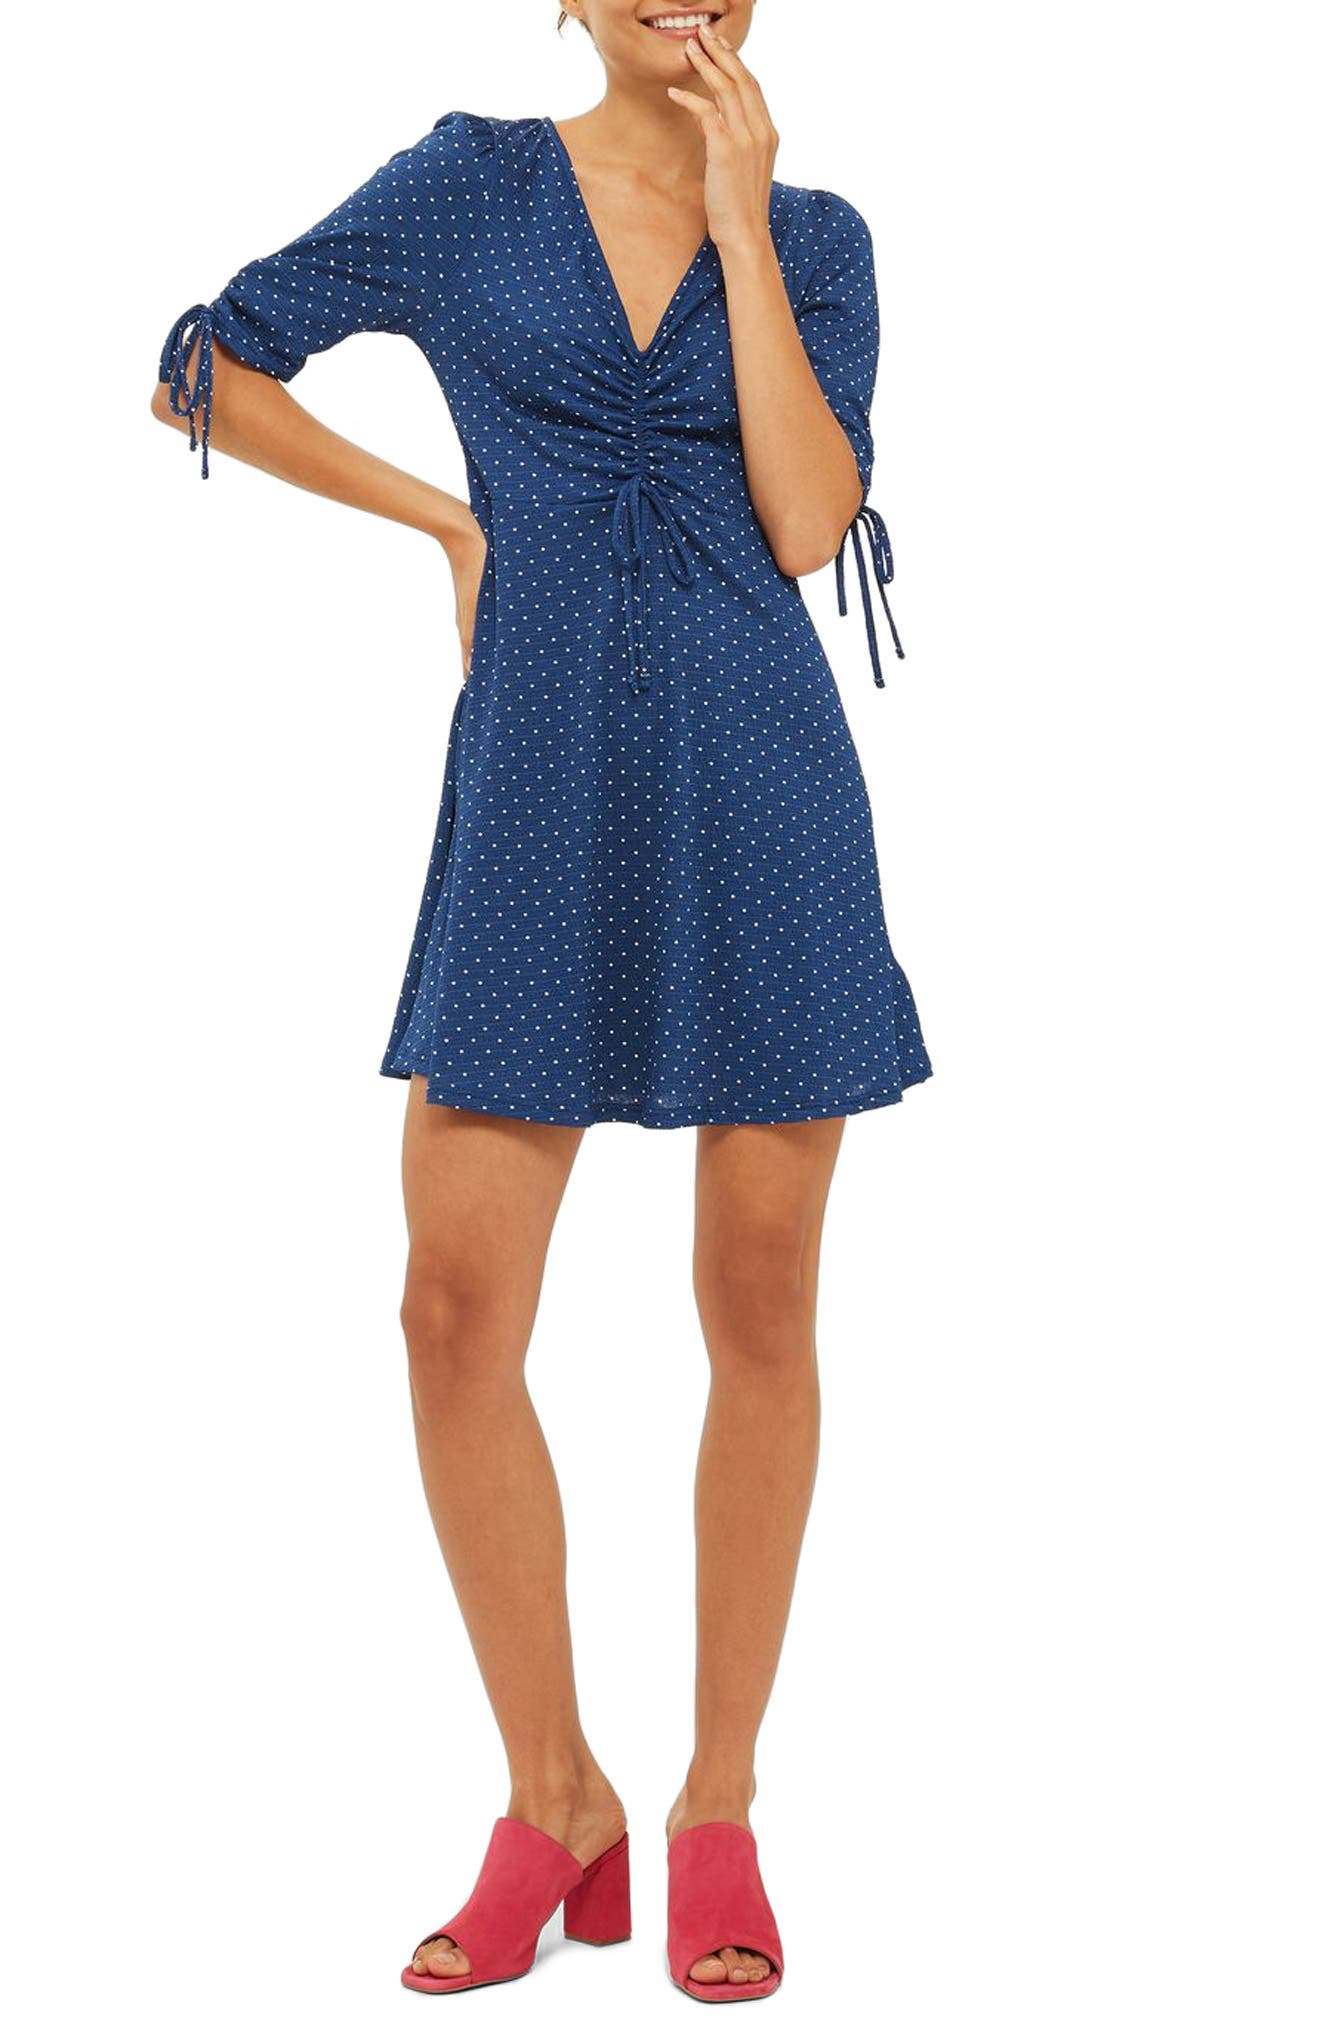 Topshop Polka Dot Tea Dress